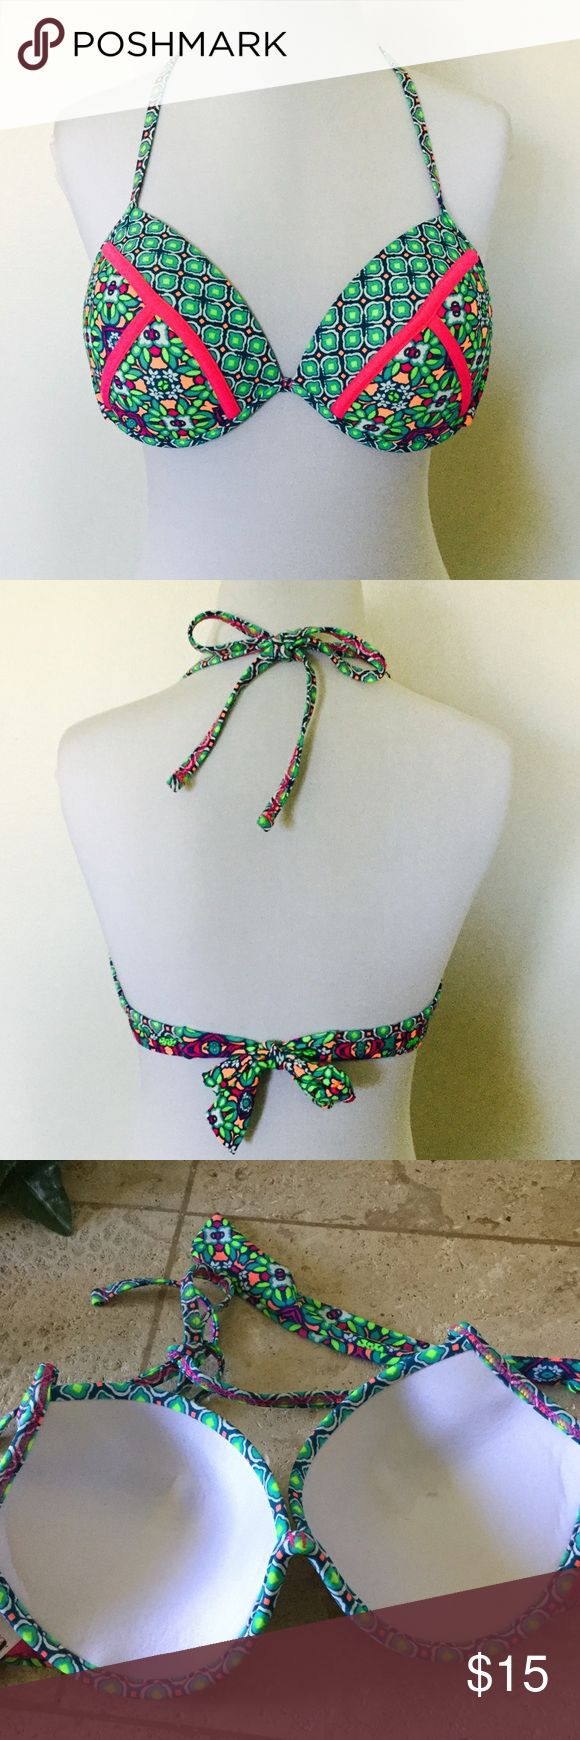 Push Up Bikini Top 💖 NWOT Super sexy n fun to wear to the beach or pool party. Does have a slight smudge from handling on the inside of the cup, but should come out with first wash. This has never been worn. It's in new condition. The colors are amazing in neon.. You'll love the design and look Swim Bikinis